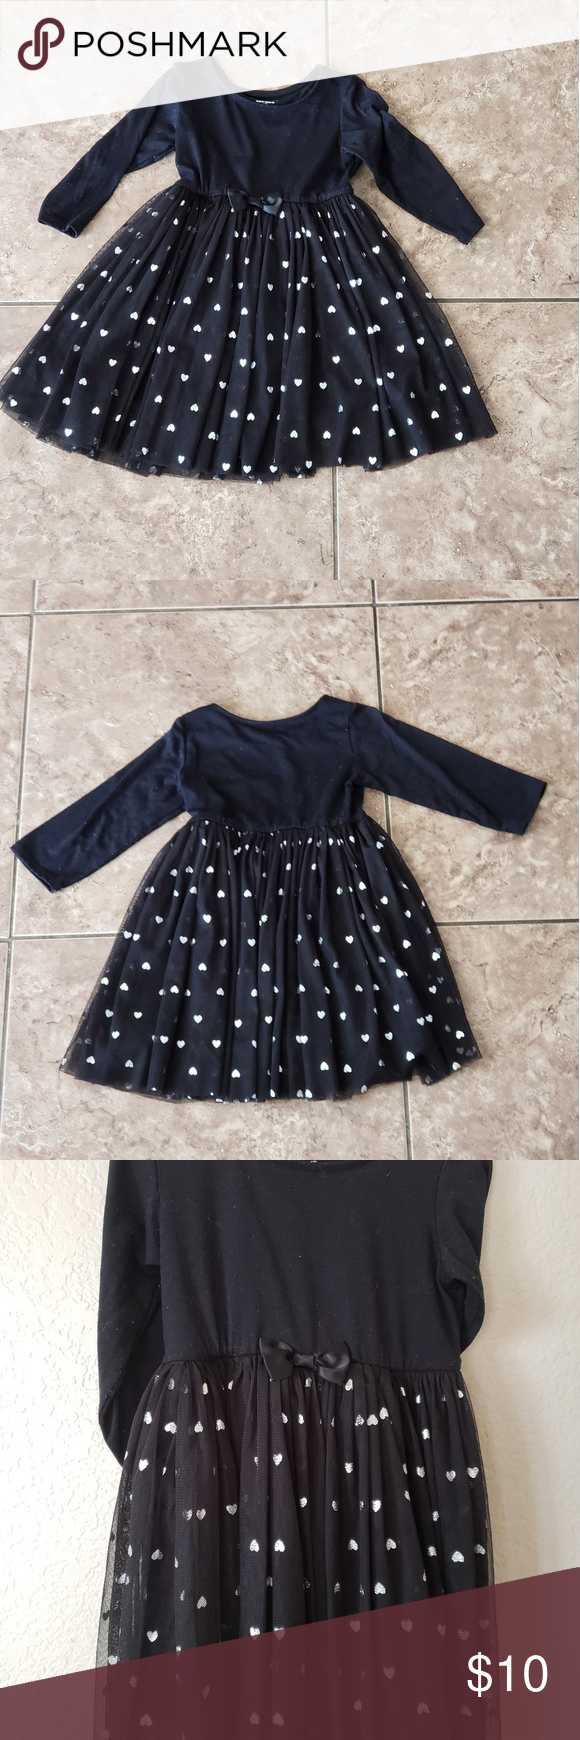 Toughskins Toddler Black Dress Very Nice And Flowy With Black Heart On The Front And Glittery Hearts On The Tulle S Toddler Black Dress Dresses Clothes Design [ 1740 x 580 Pixel ]